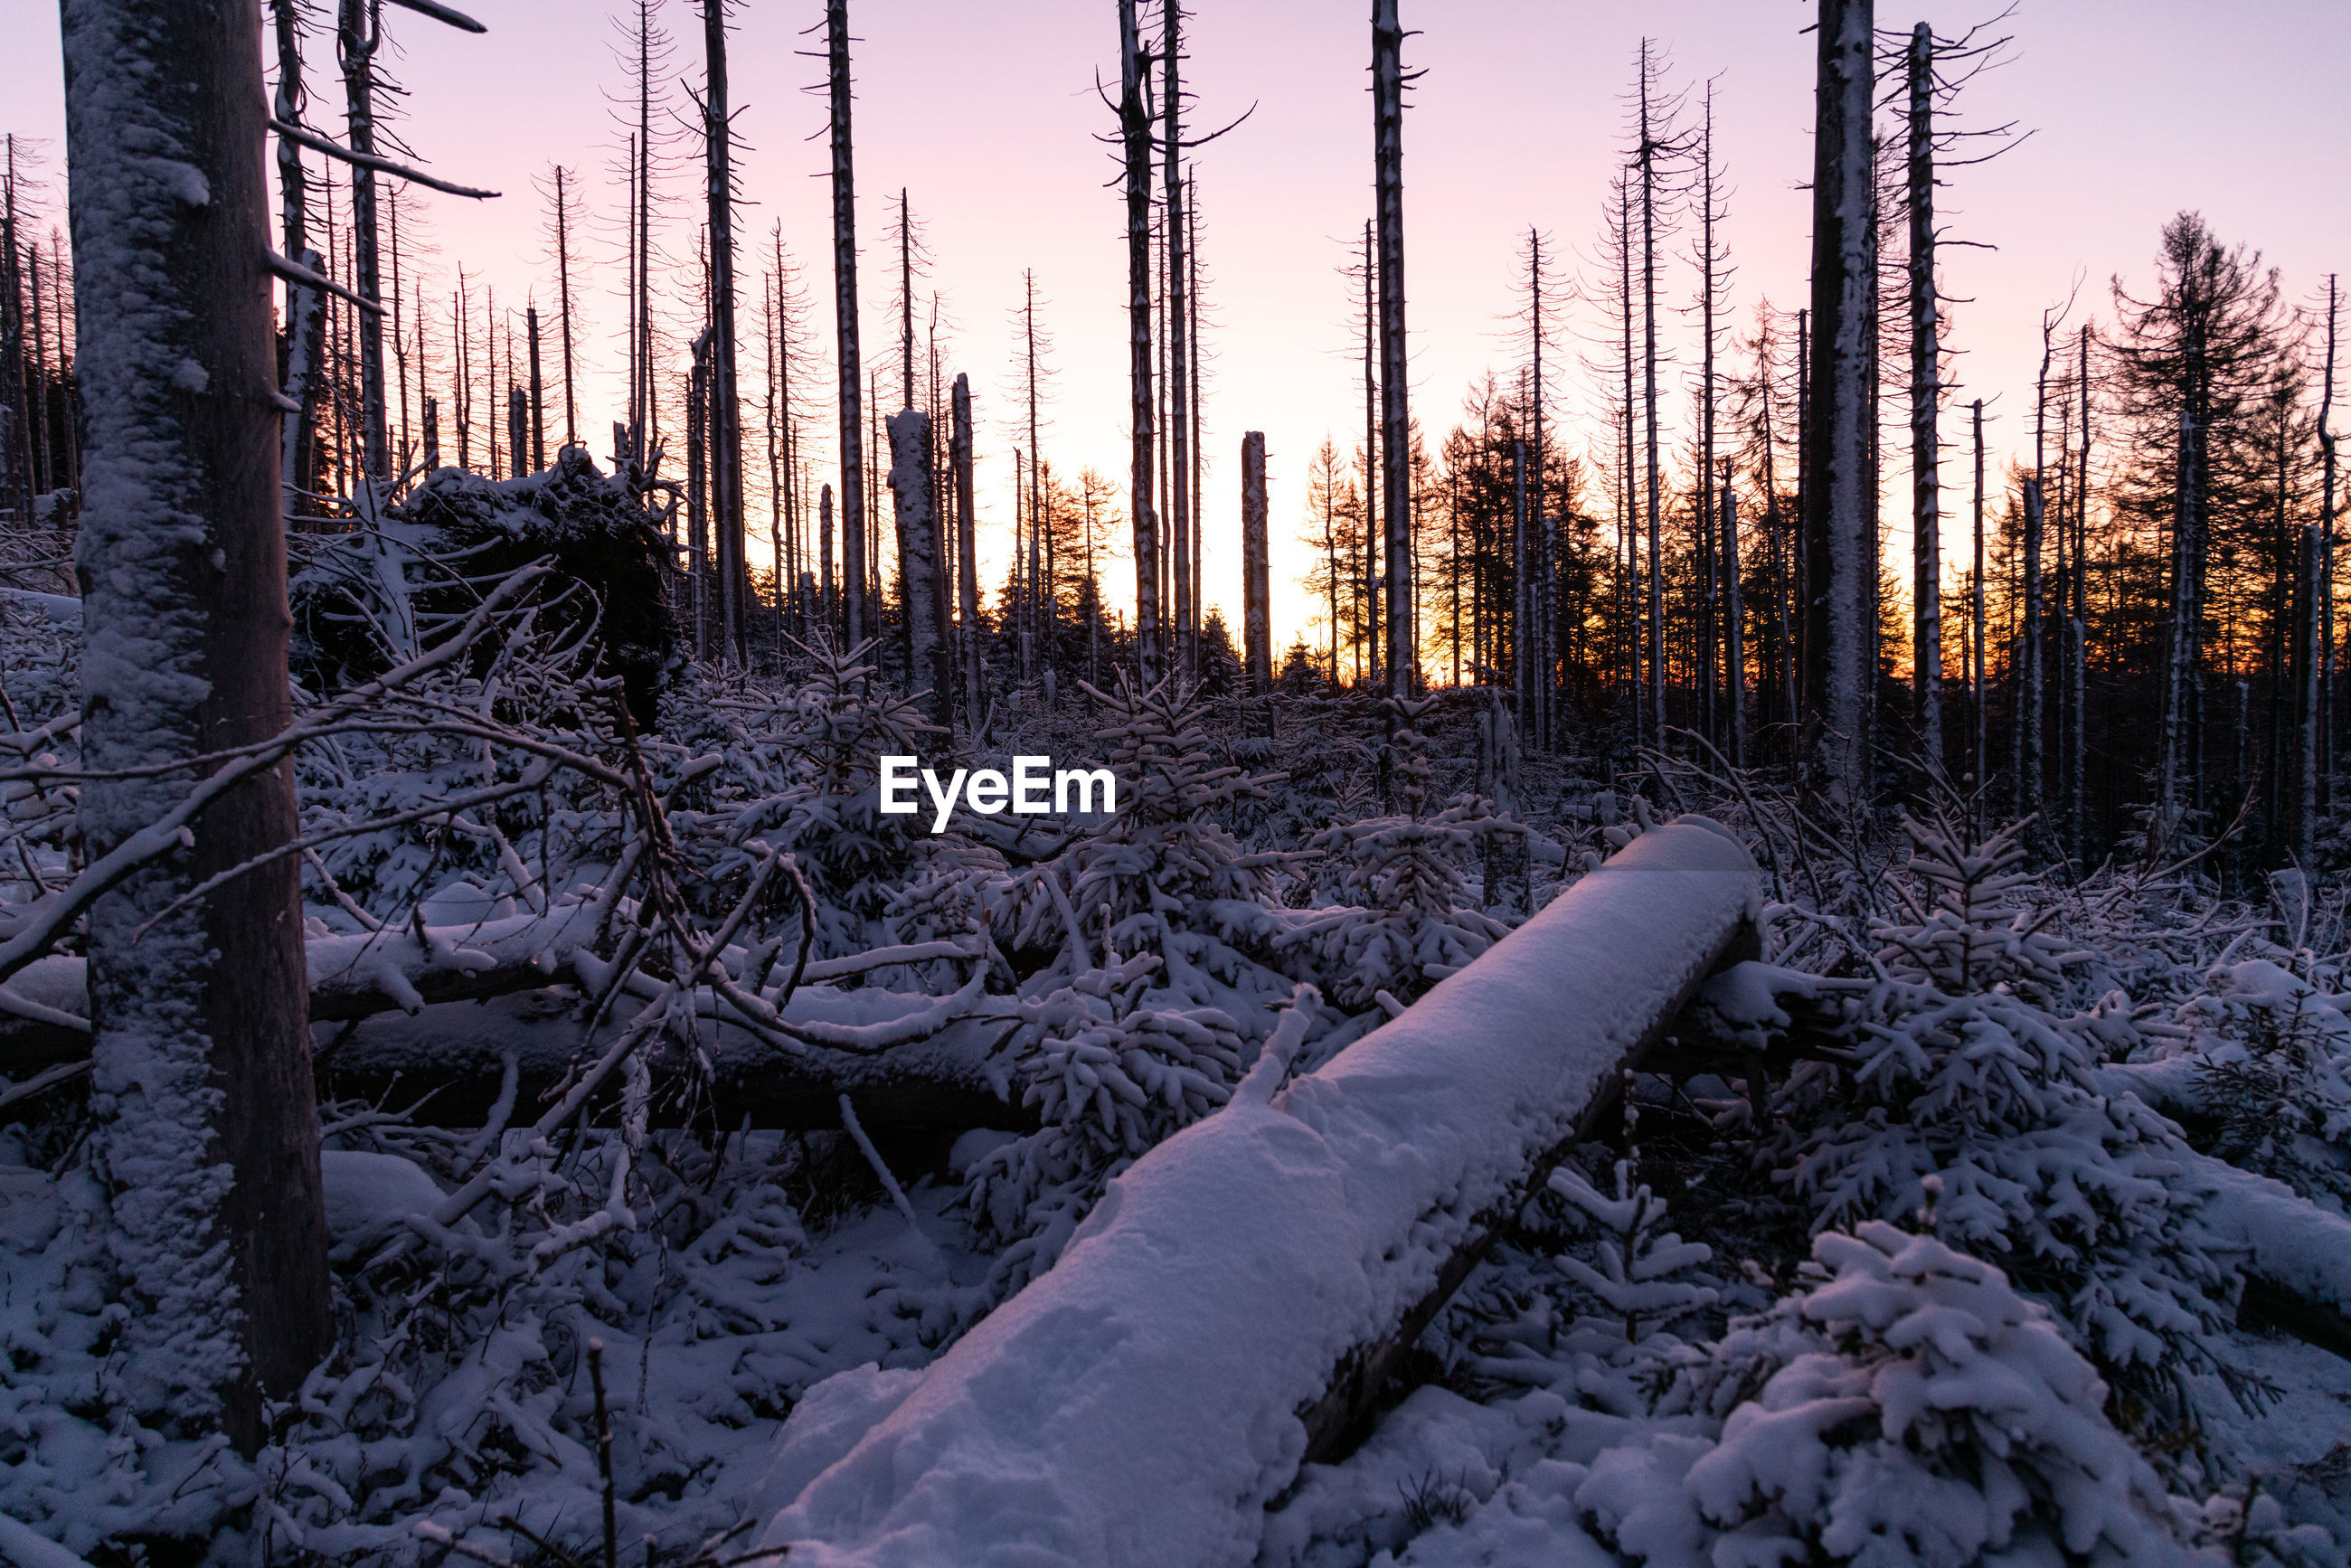 SCENIC VIEW OF FROZEN FOREST AGAINST SKY DURING WINTER